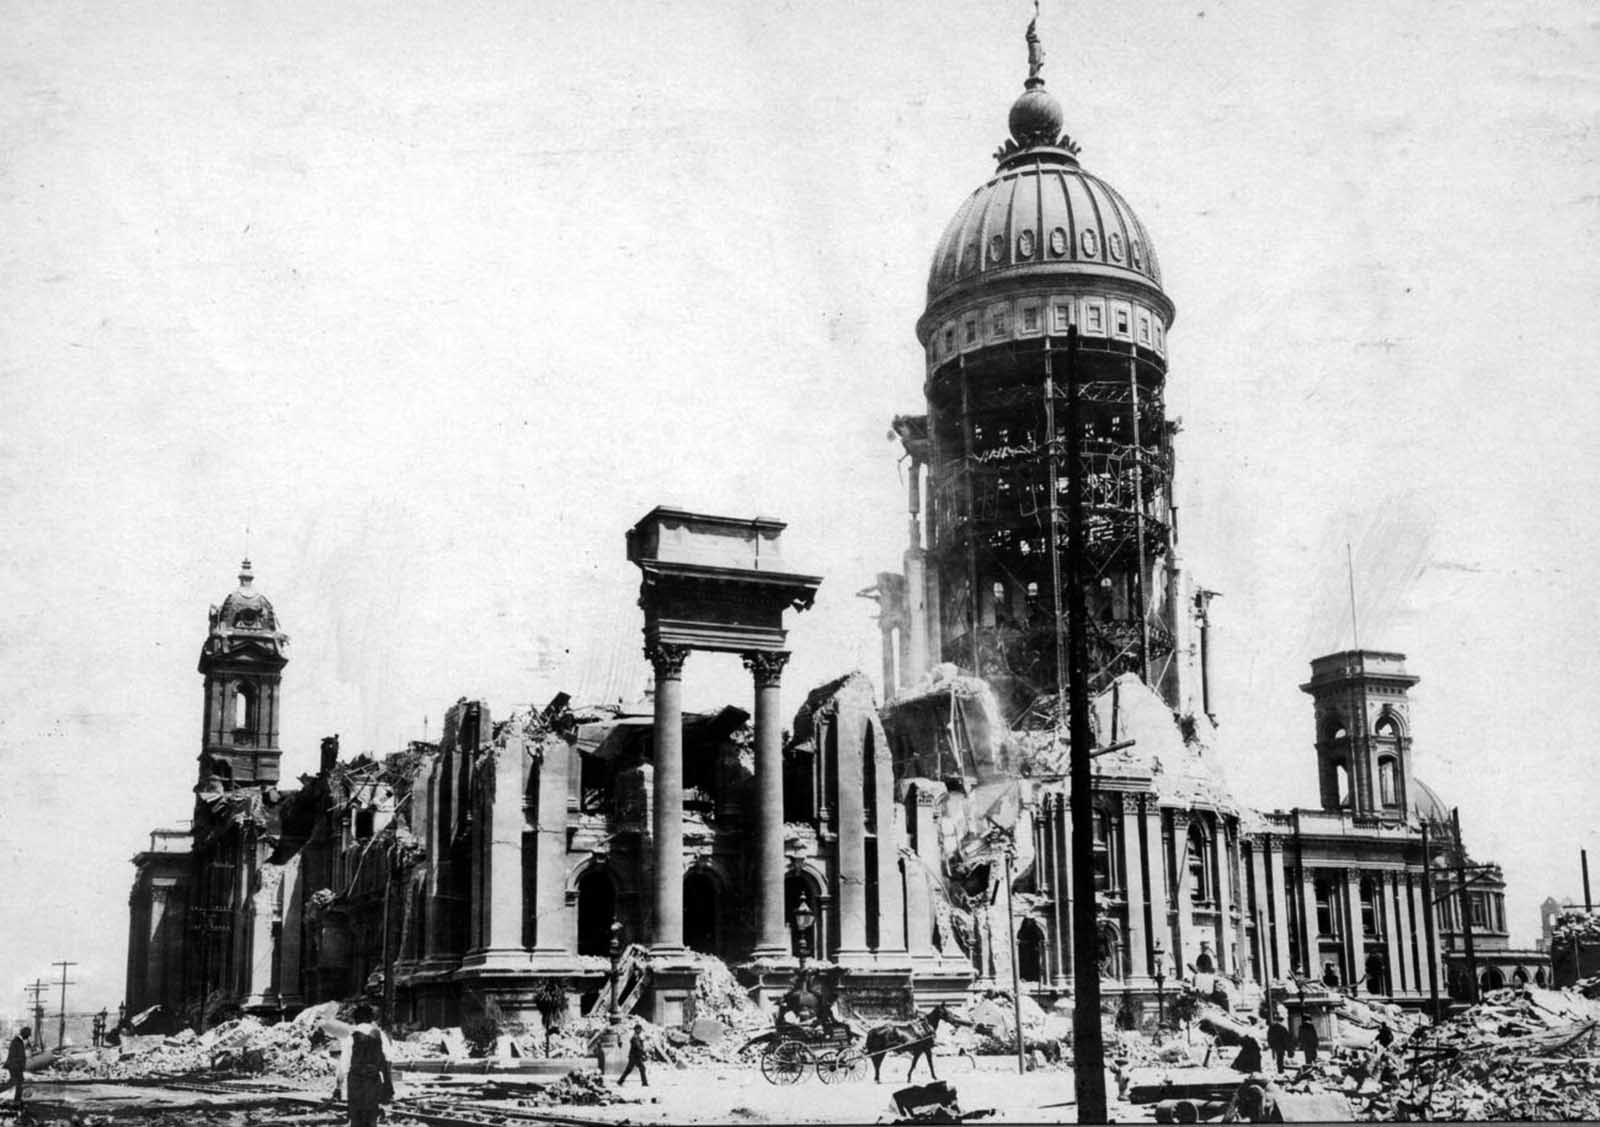 The remains of San Francisco City Hall.